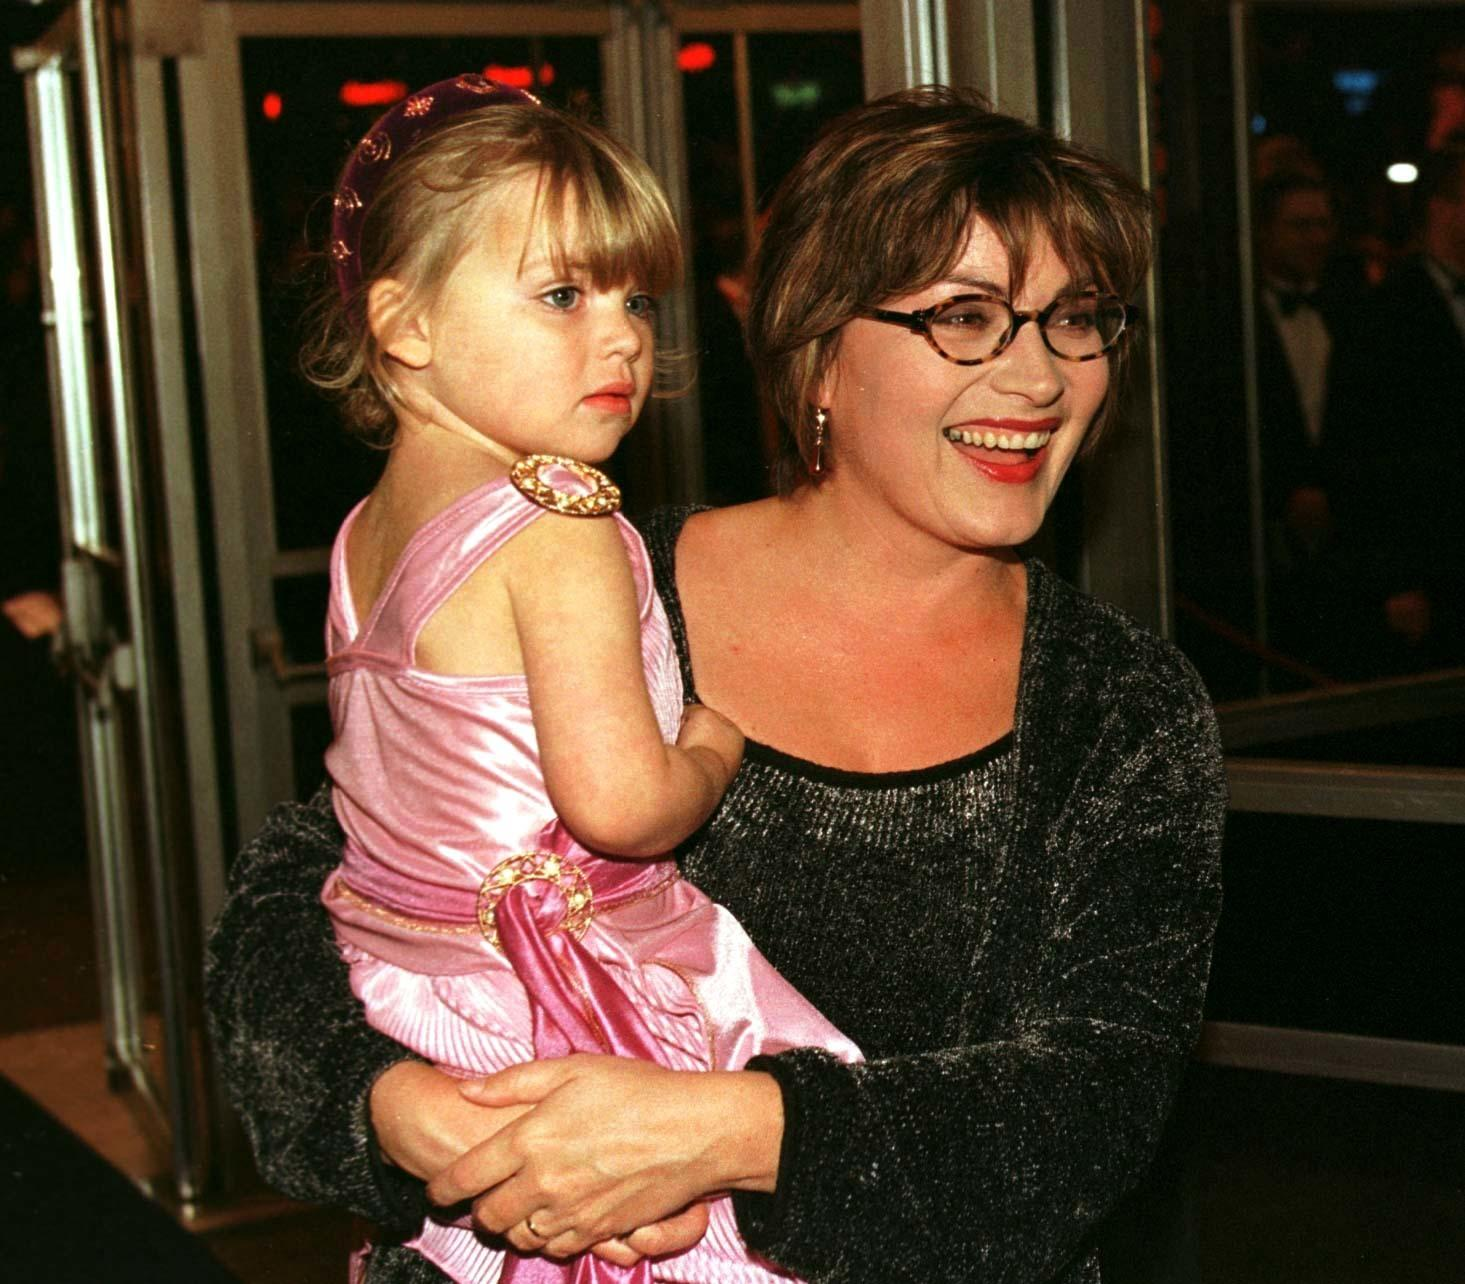 """PA NEWS PHOTO 9/10/97  TV Presenter Lorraine Kelly with her daughter attend the movie premiere of """"Hercules"""" at the Odeon, Leicester Square, London"""